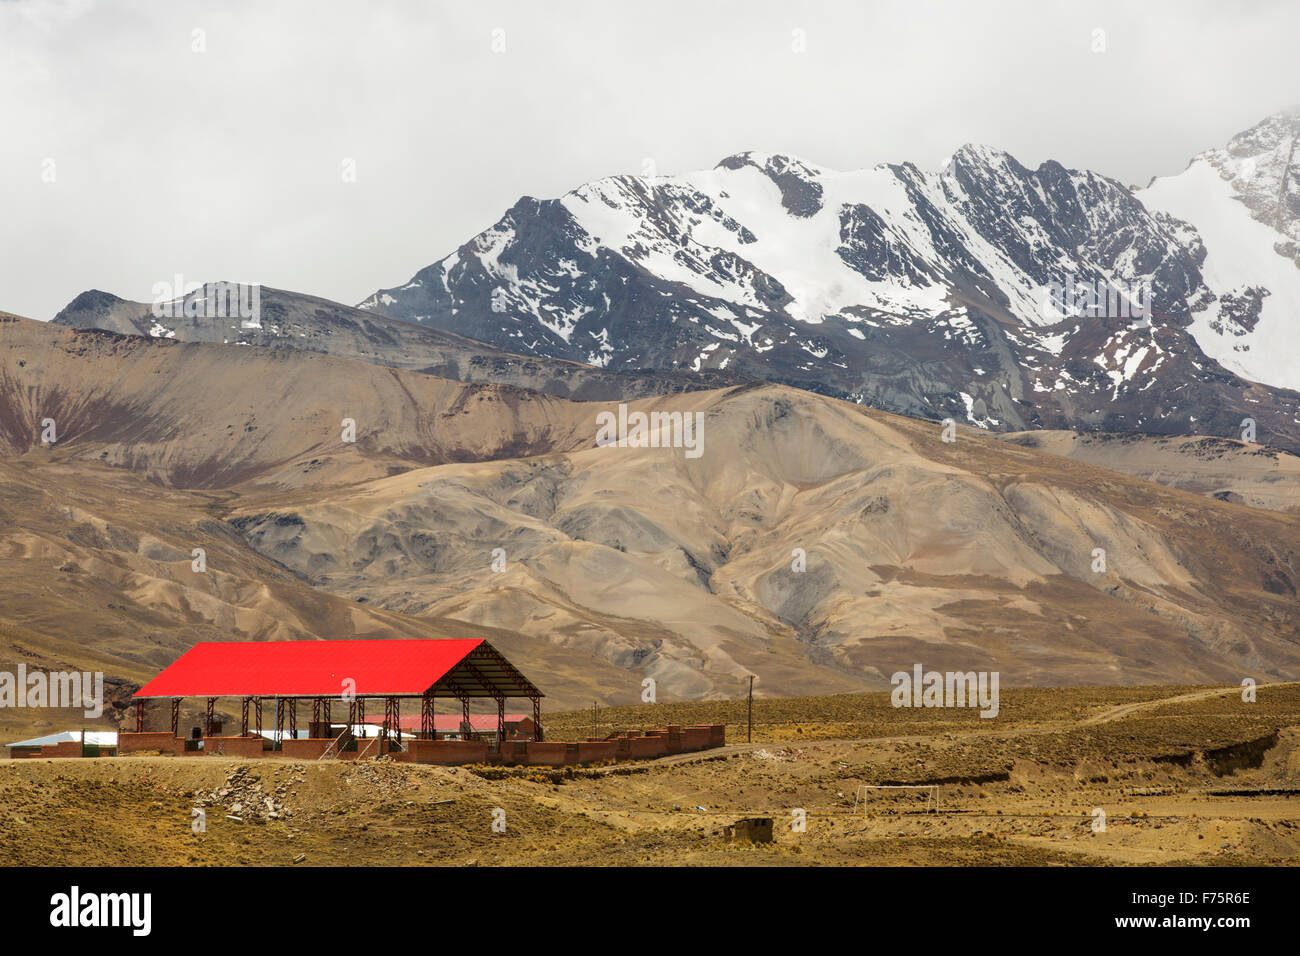 Looking over the Altiplano to the snow covered Andean peak of Huayna Potosi in Bolivia. - Stock Image